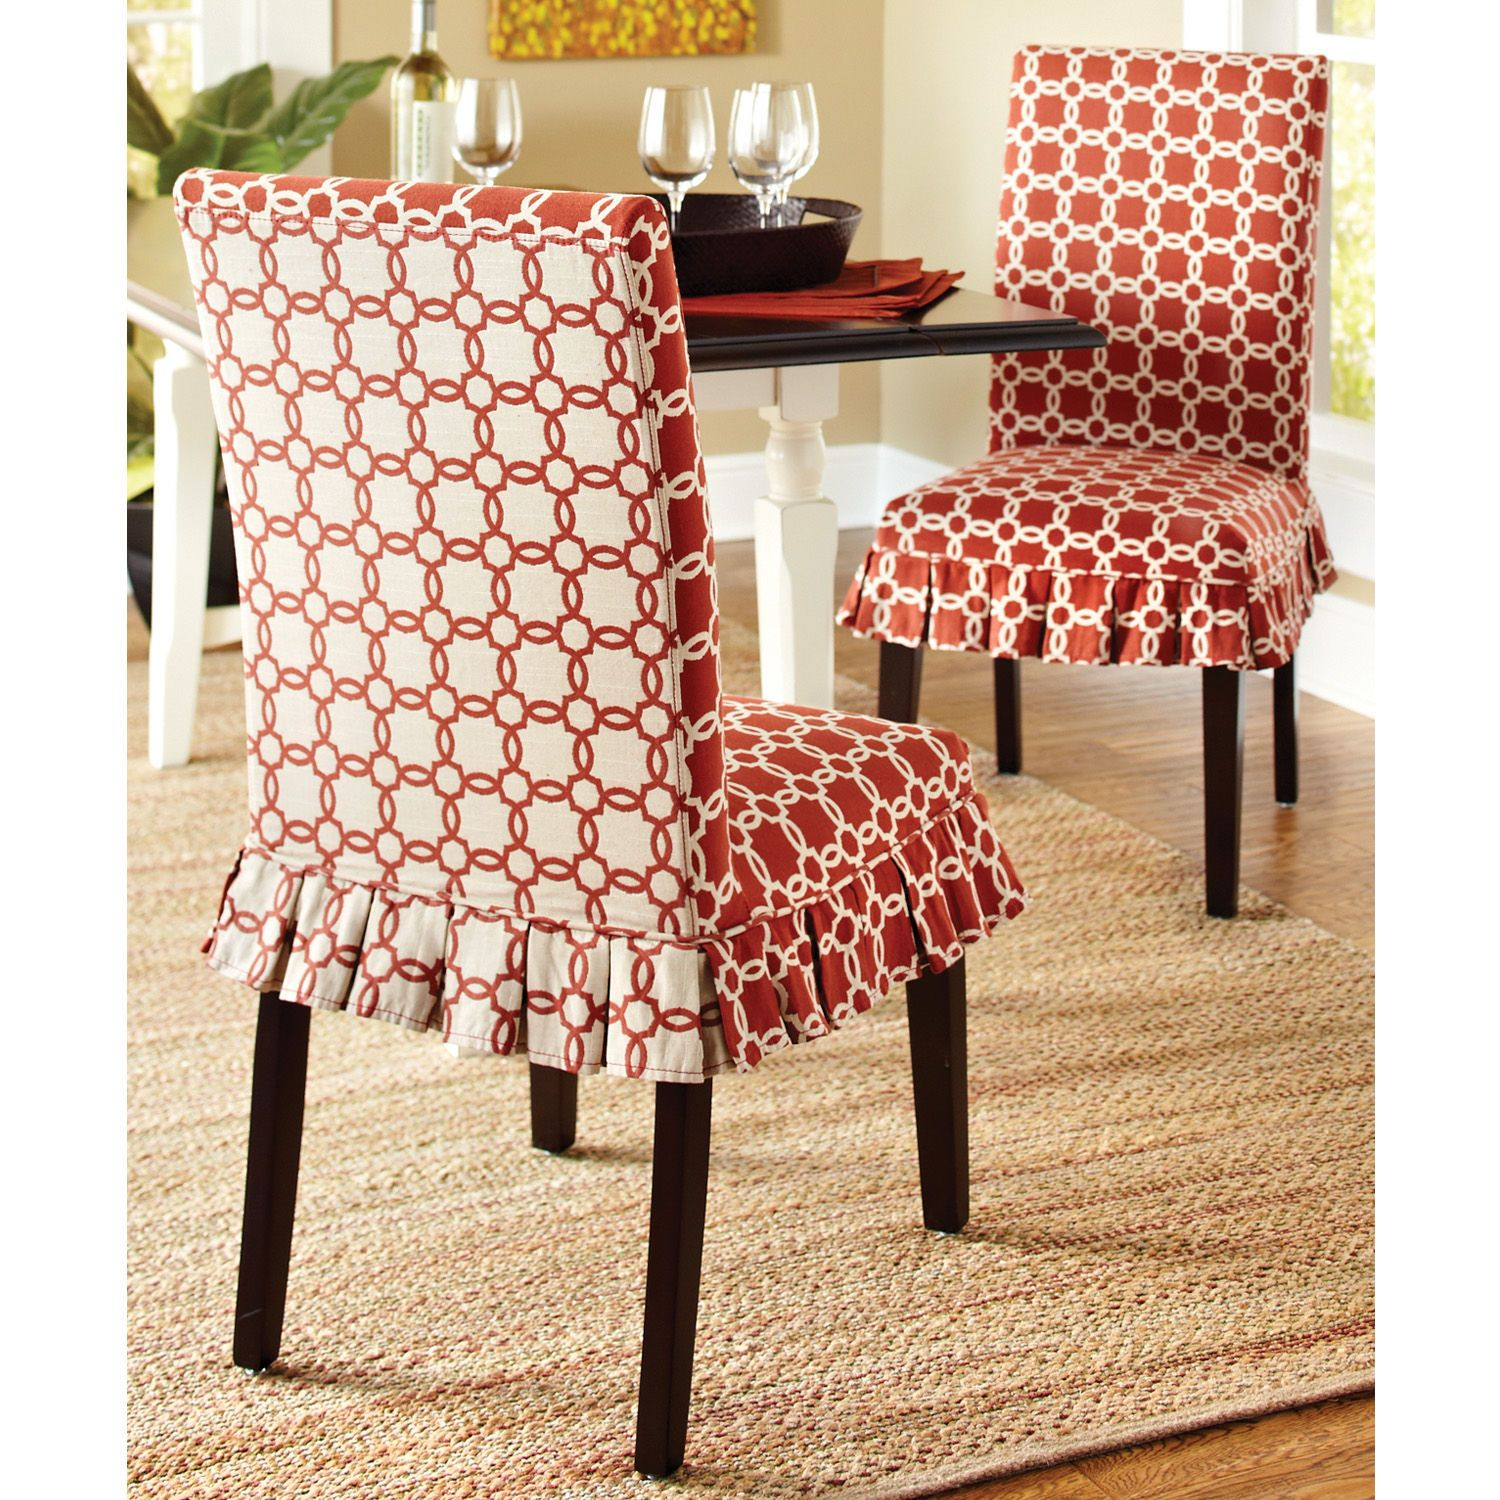 How fun are these slipcovers from Pier 1  Slipcovers